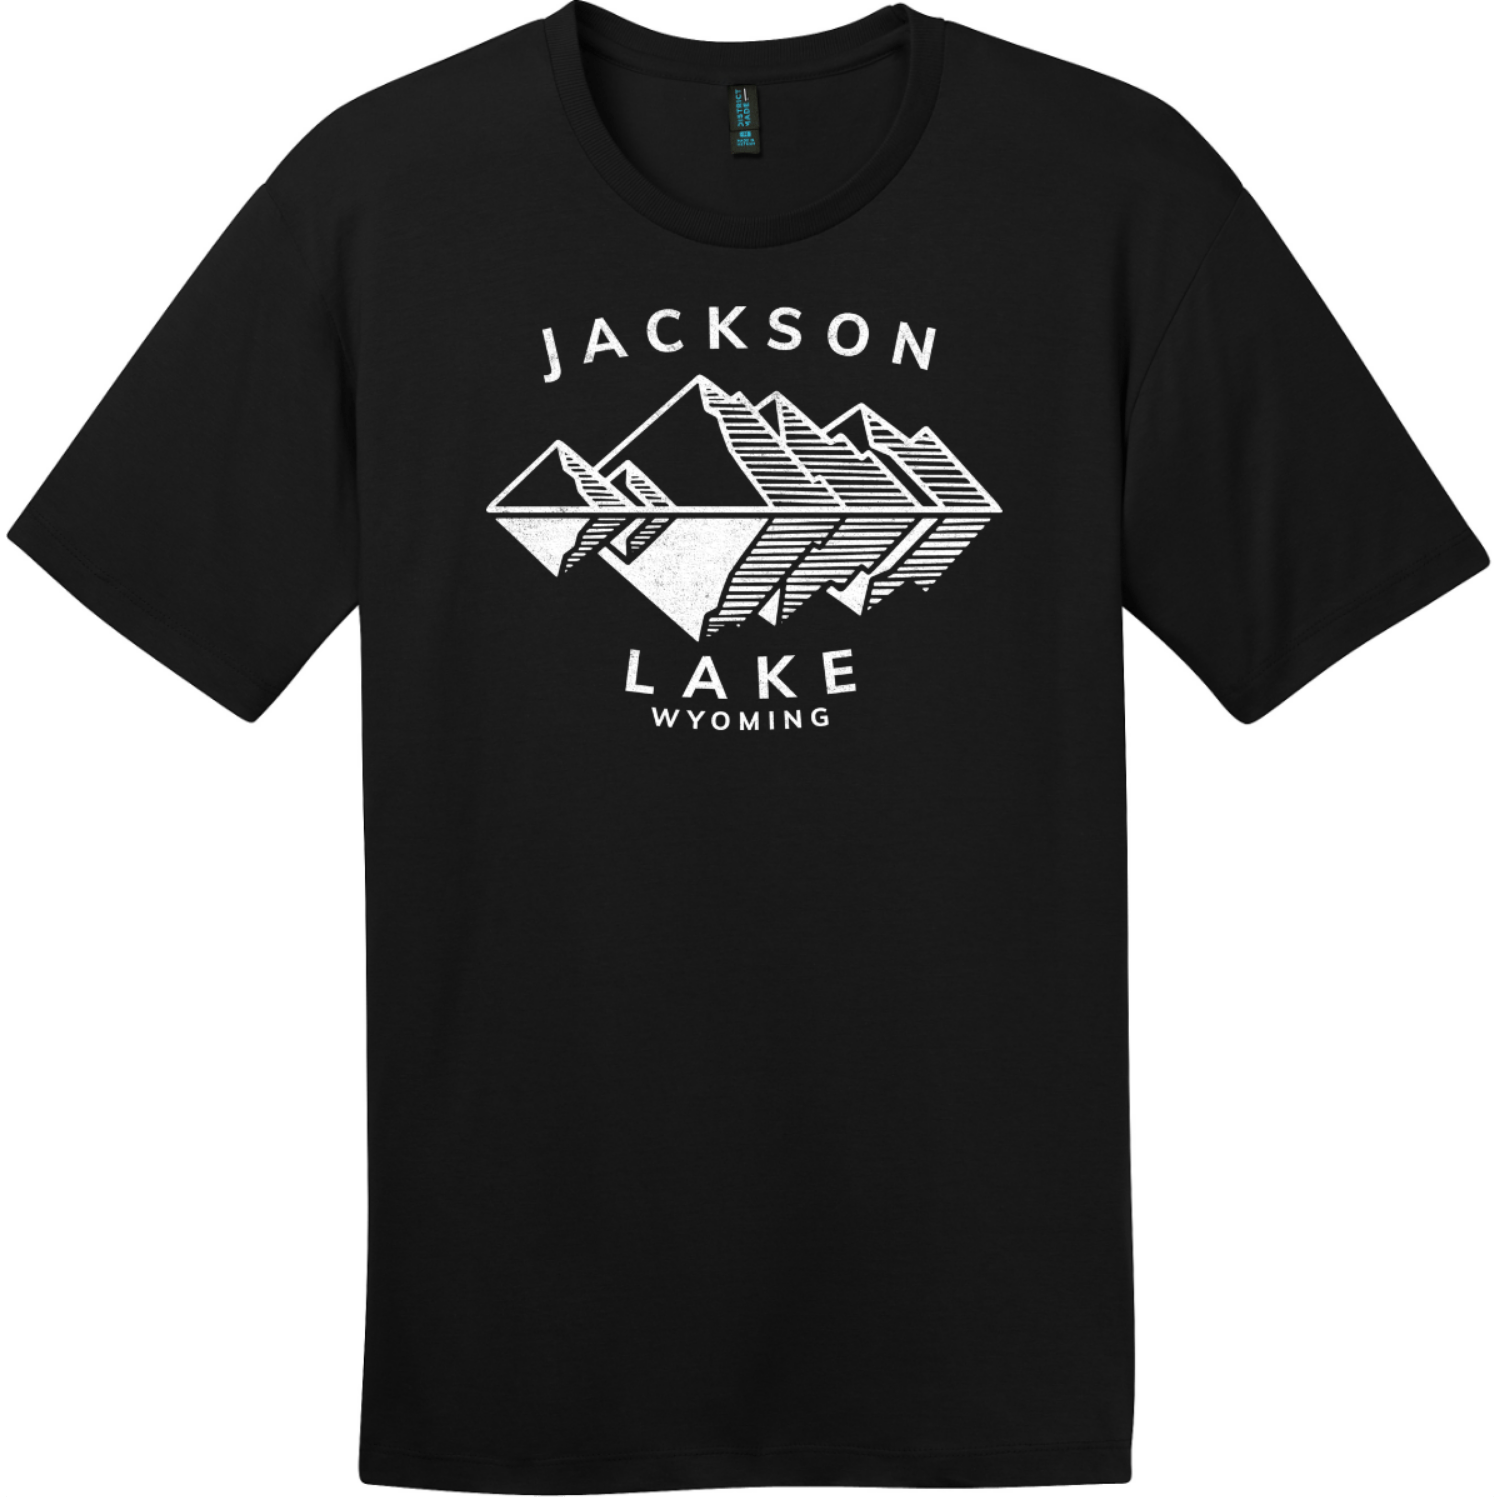 Jackson Lake Wyoming Mountains T-Shirt Jet Black District Perfect Weight Tee DT104